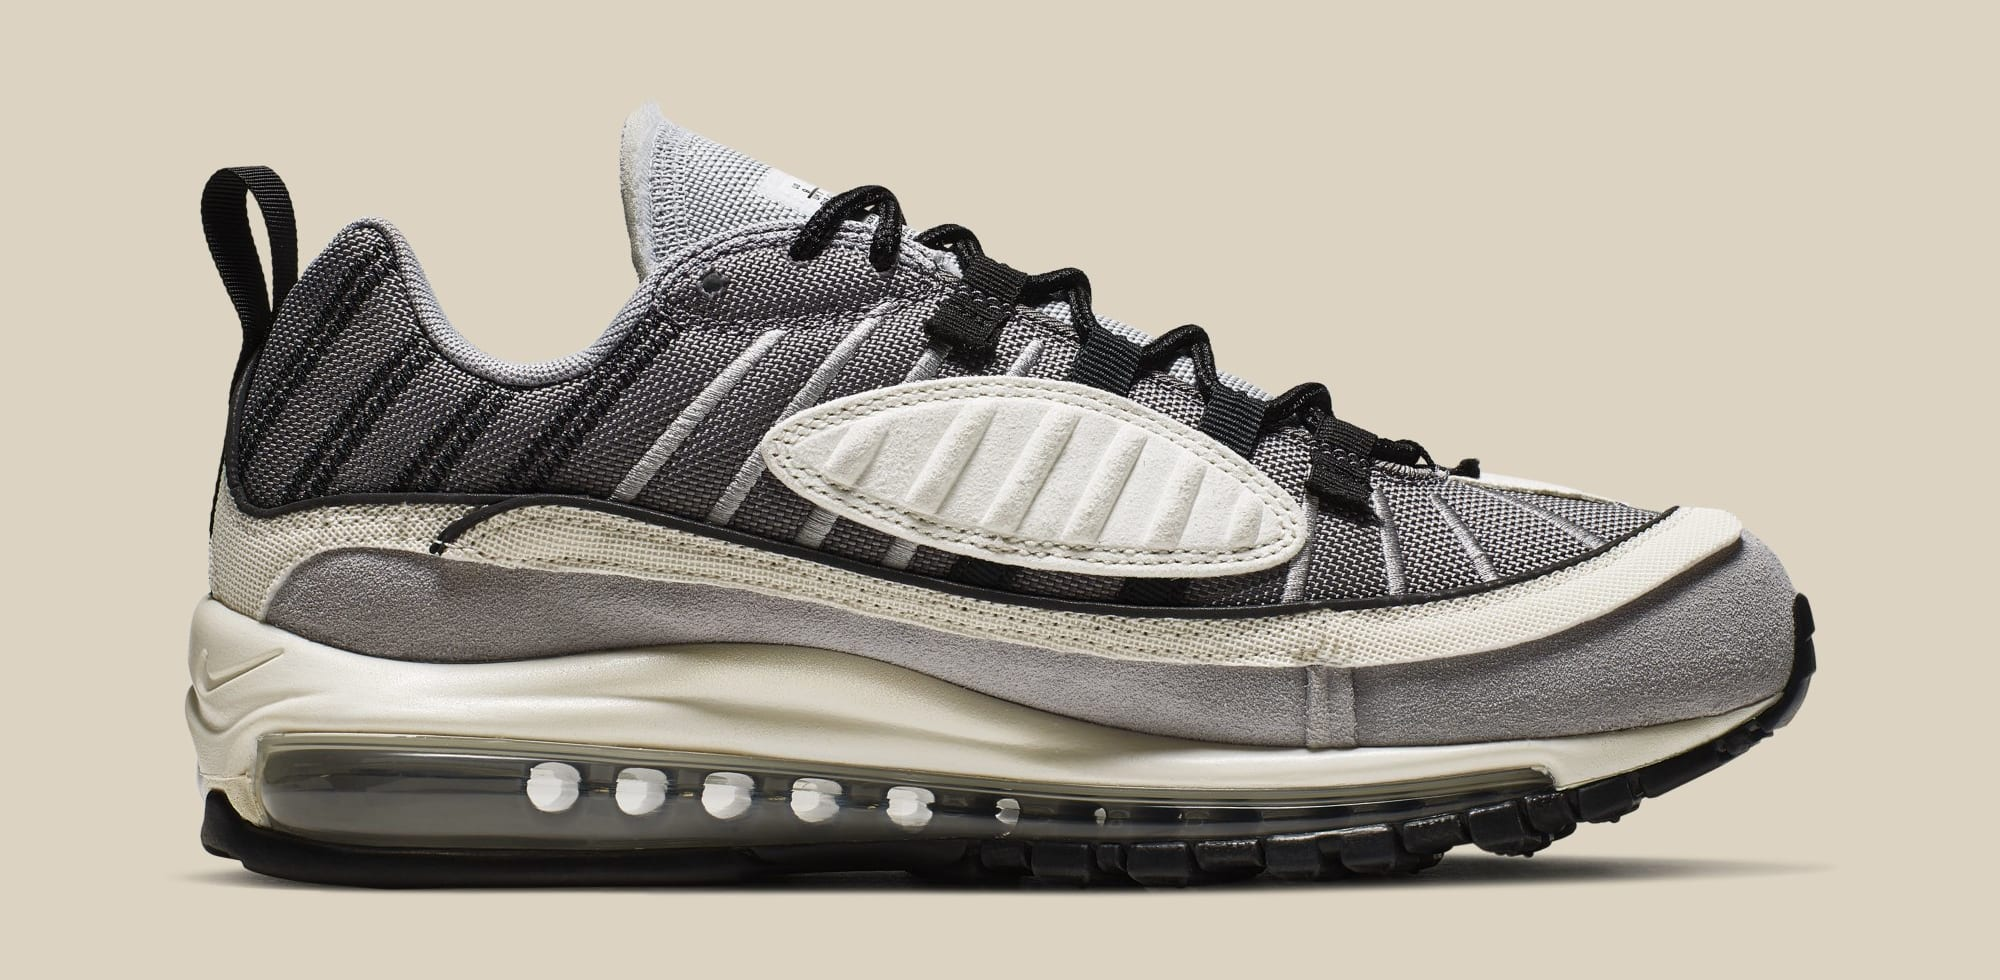 Nike Air Max 98 'Inside Out' AO9380-002 (Medial)